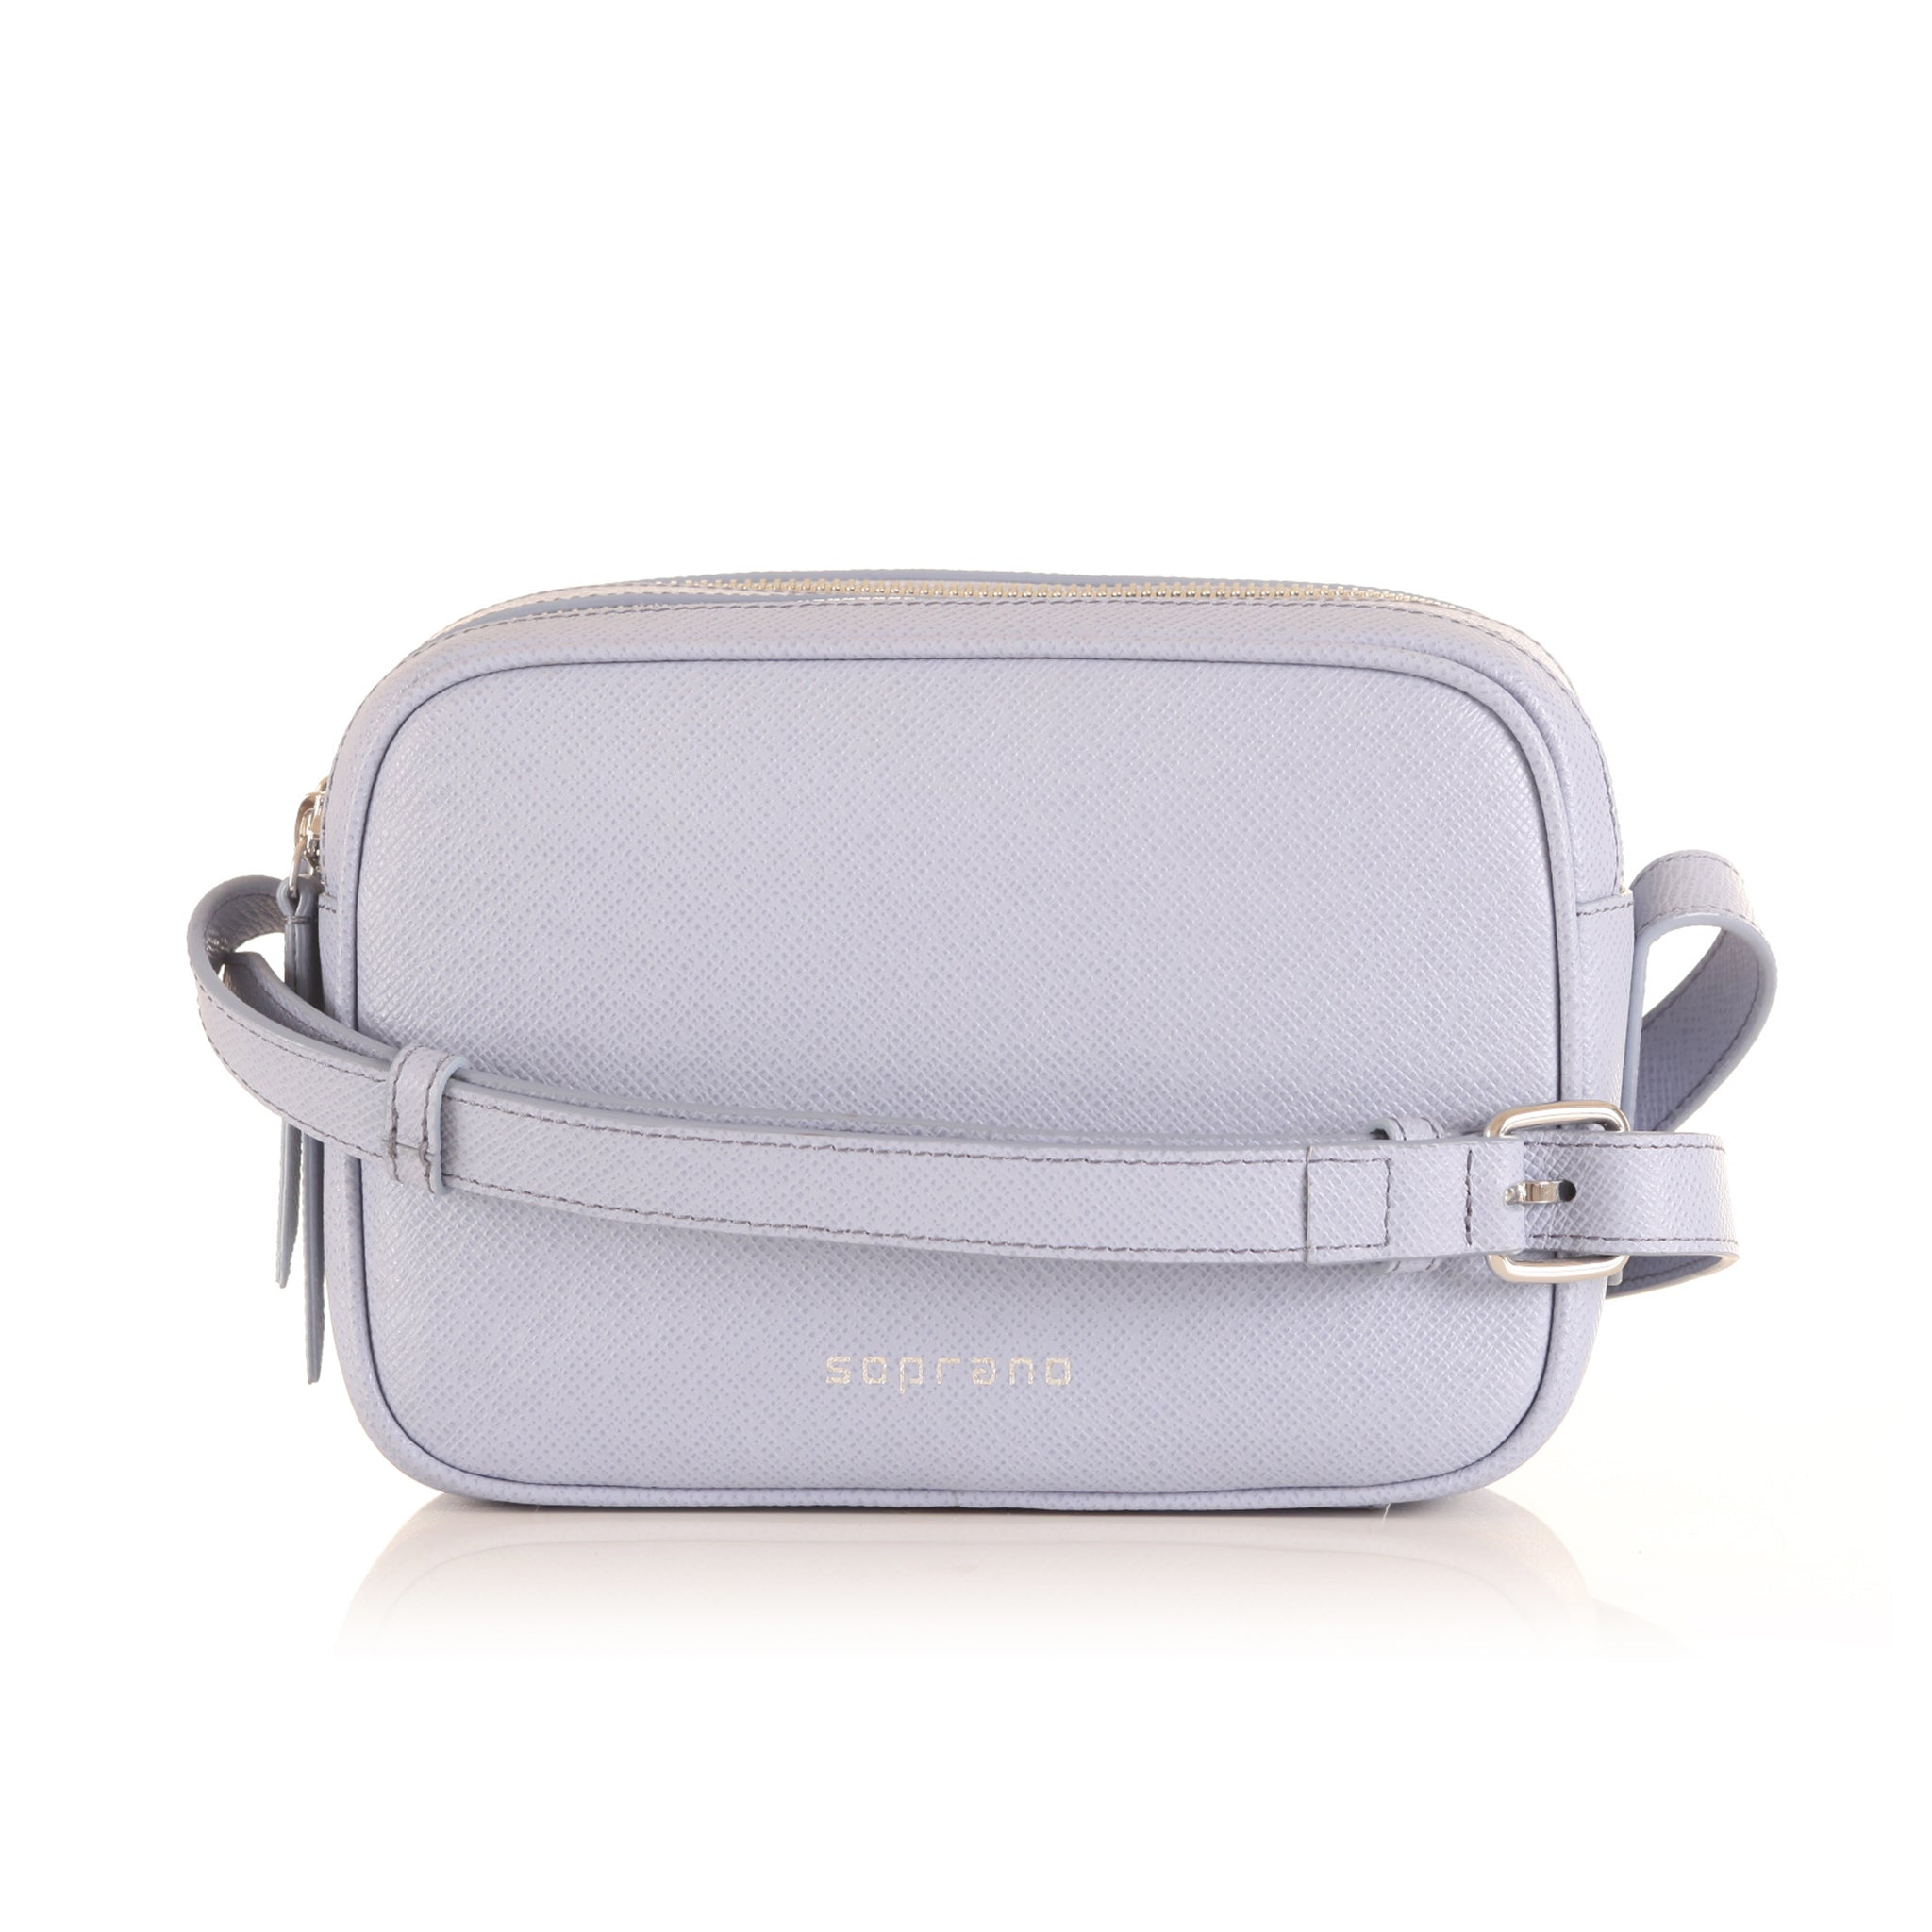 Uptown Double Zip Crossbody